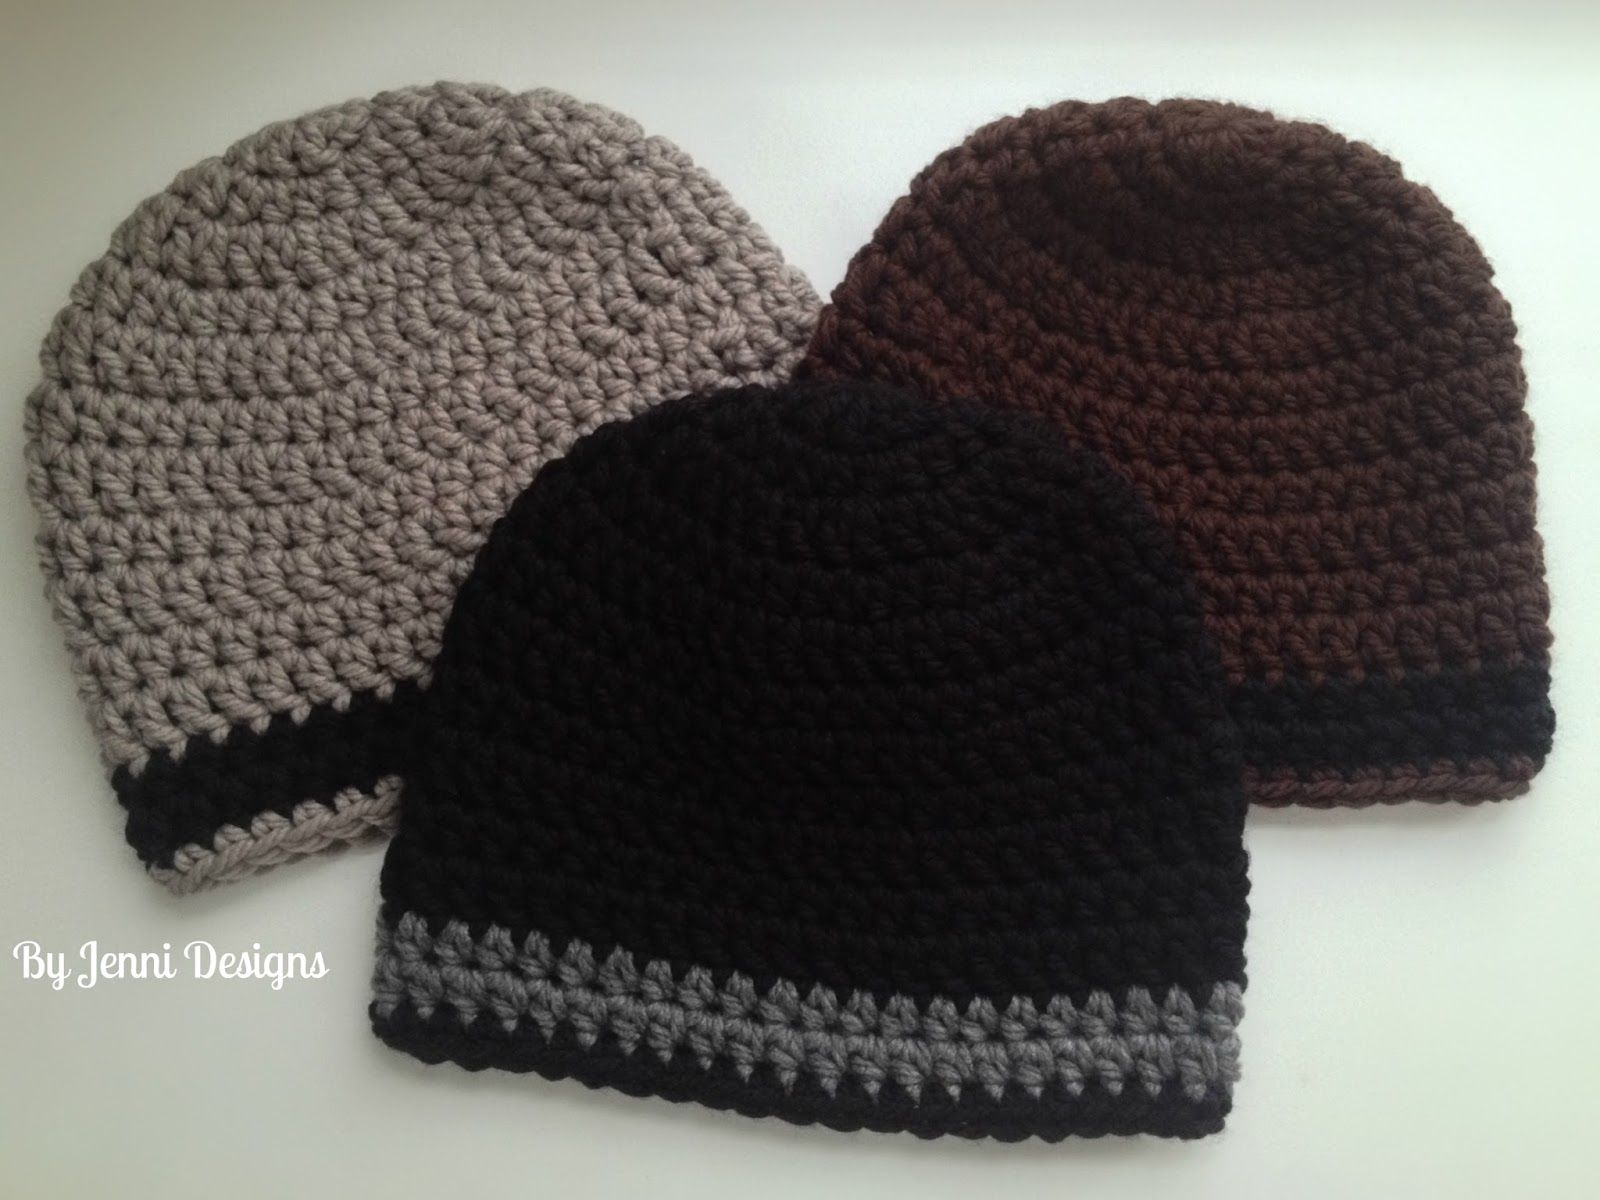 Free crochet pattern for a mens size beanie hat using chunky yarn ...